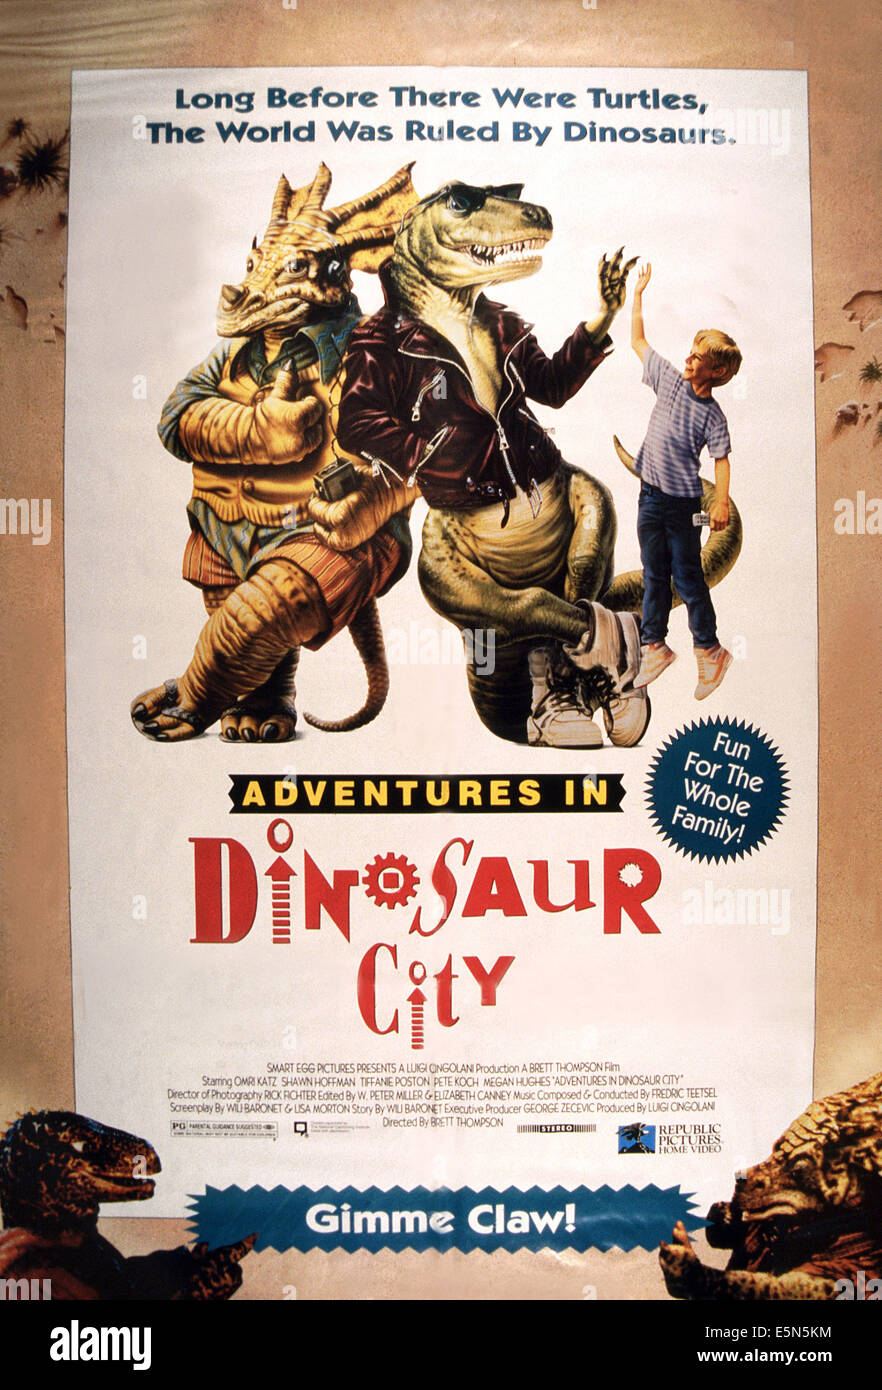 ADVENTURES IN DINOSAUR CITY, 1992 - Stock Image